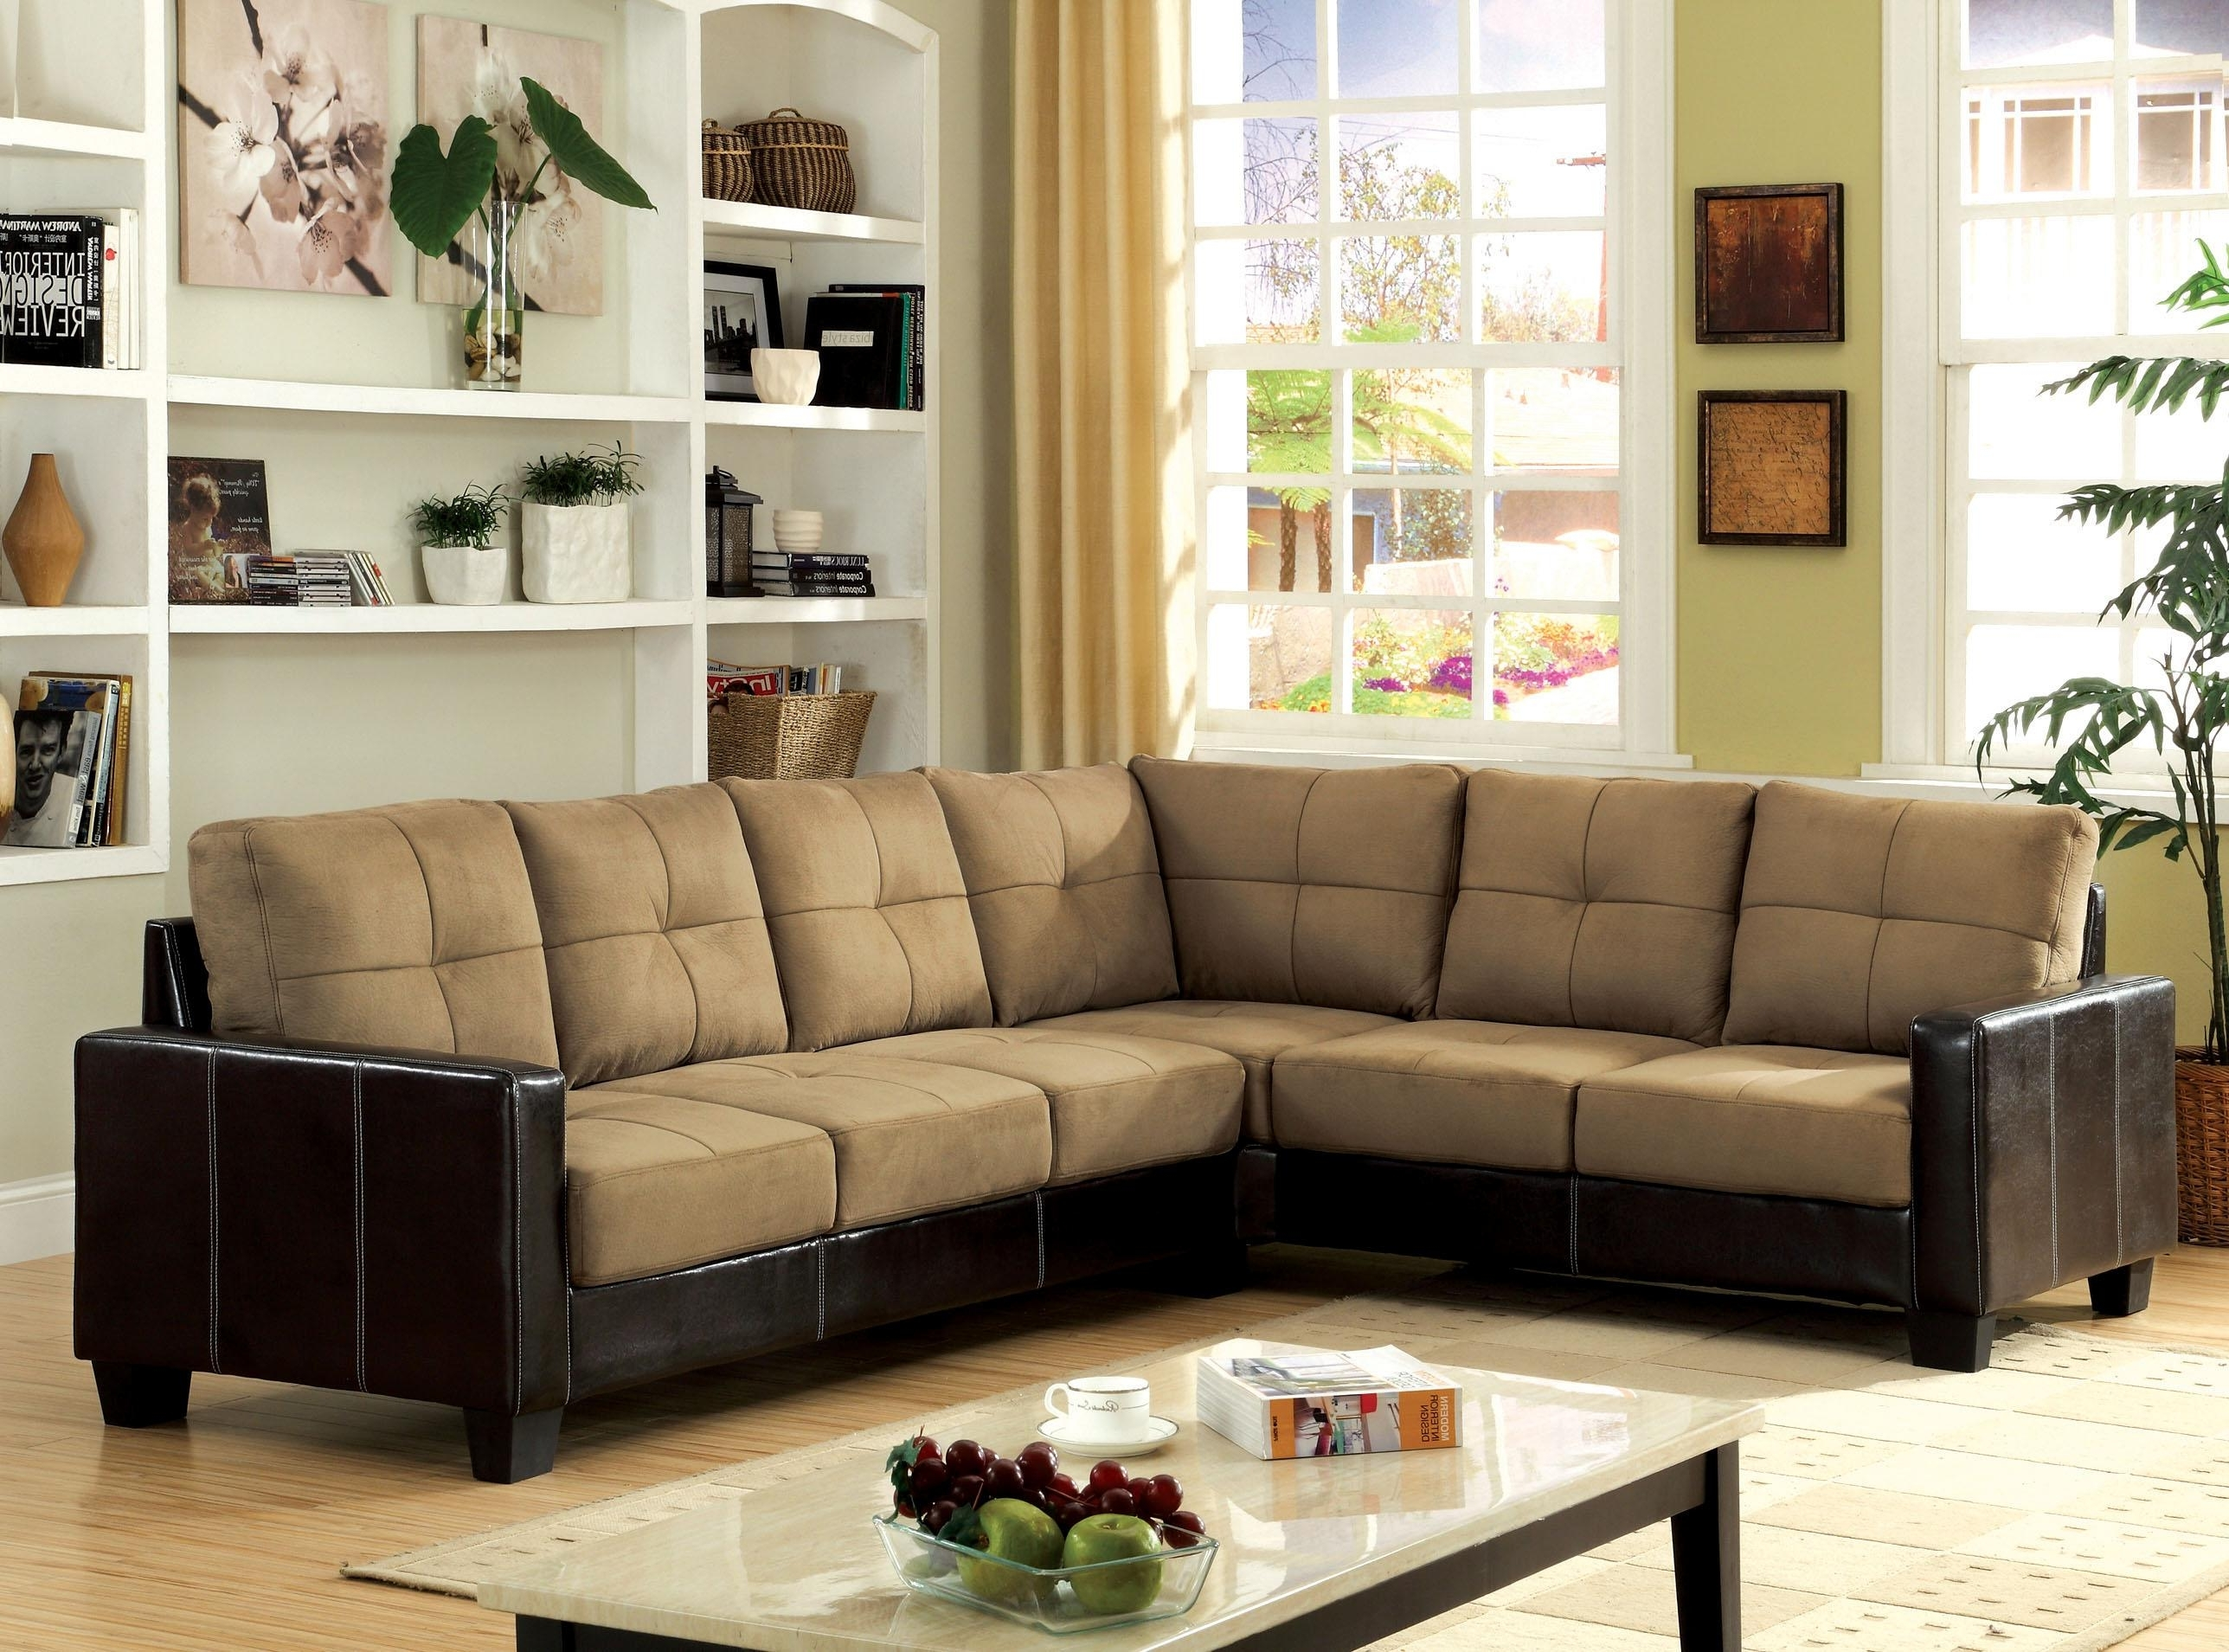 Sectional Sofas At Amazon Regarding Newest Sectional Sofas Amazon – Cleanupflorida (View 13 of 20)